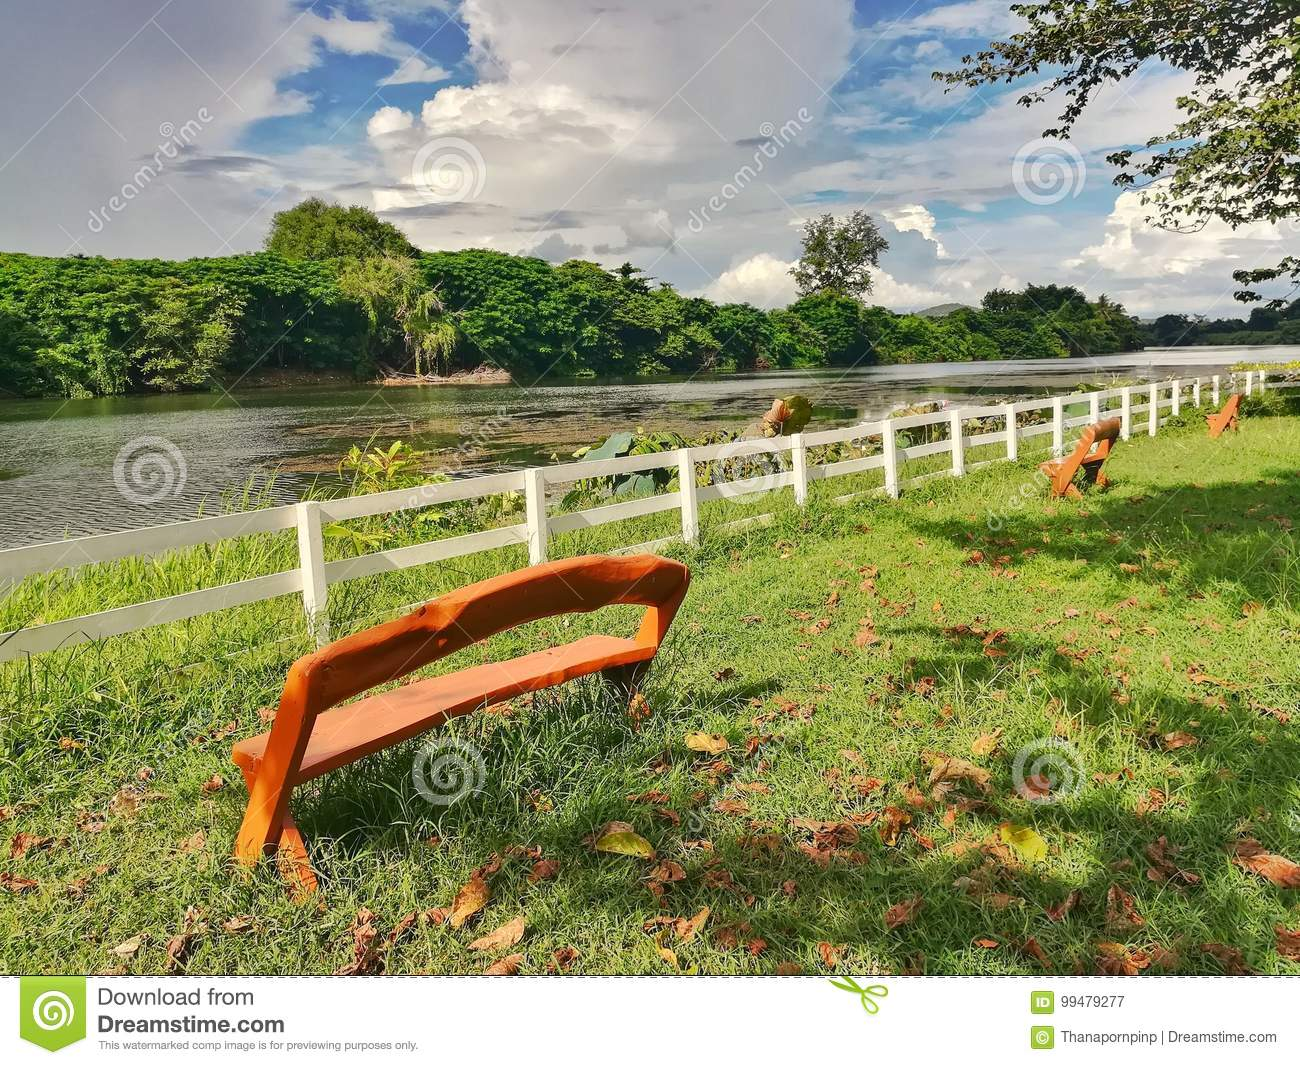 Magnificent Wooden Bench In Public Park Near The River Stock Image Gmtry Best Dining Table And Chair Ideas Images Gmtryco